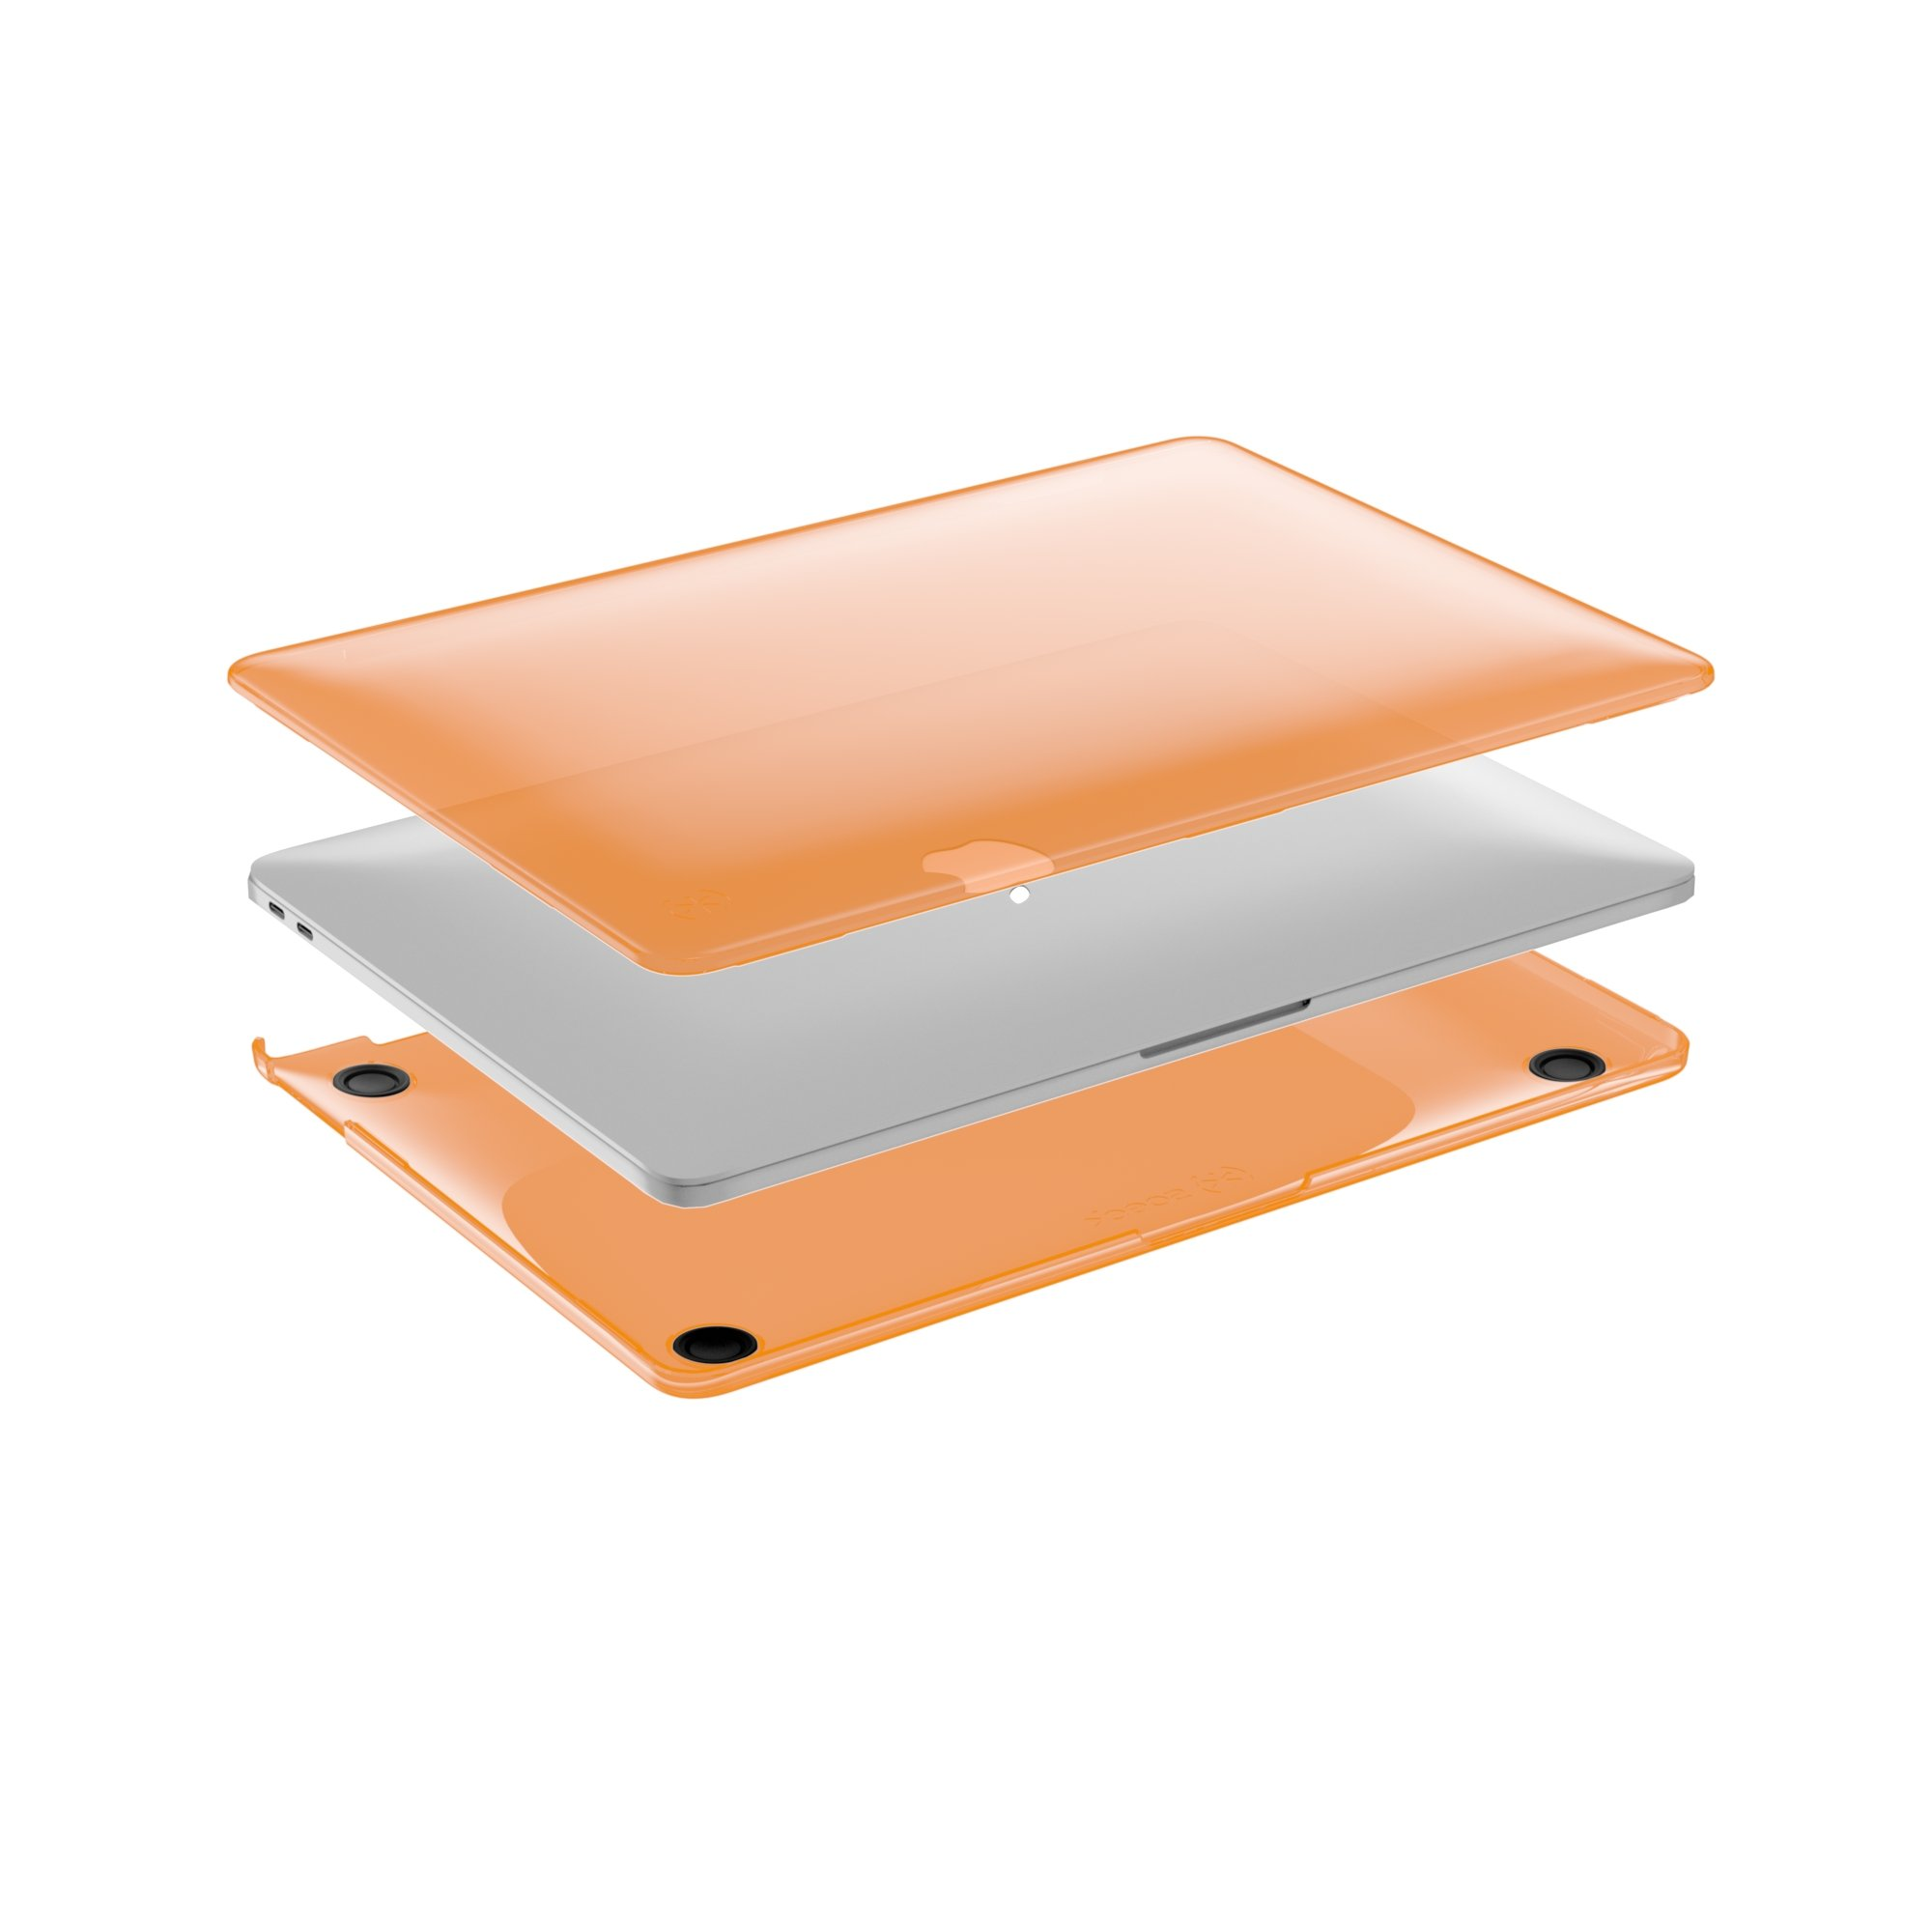 Speck Products 110608-7374 SmartShell Case, MacBook Pro 13'' (with and Without Touch Bar), Persimmon Orange by Speck (Image #2)